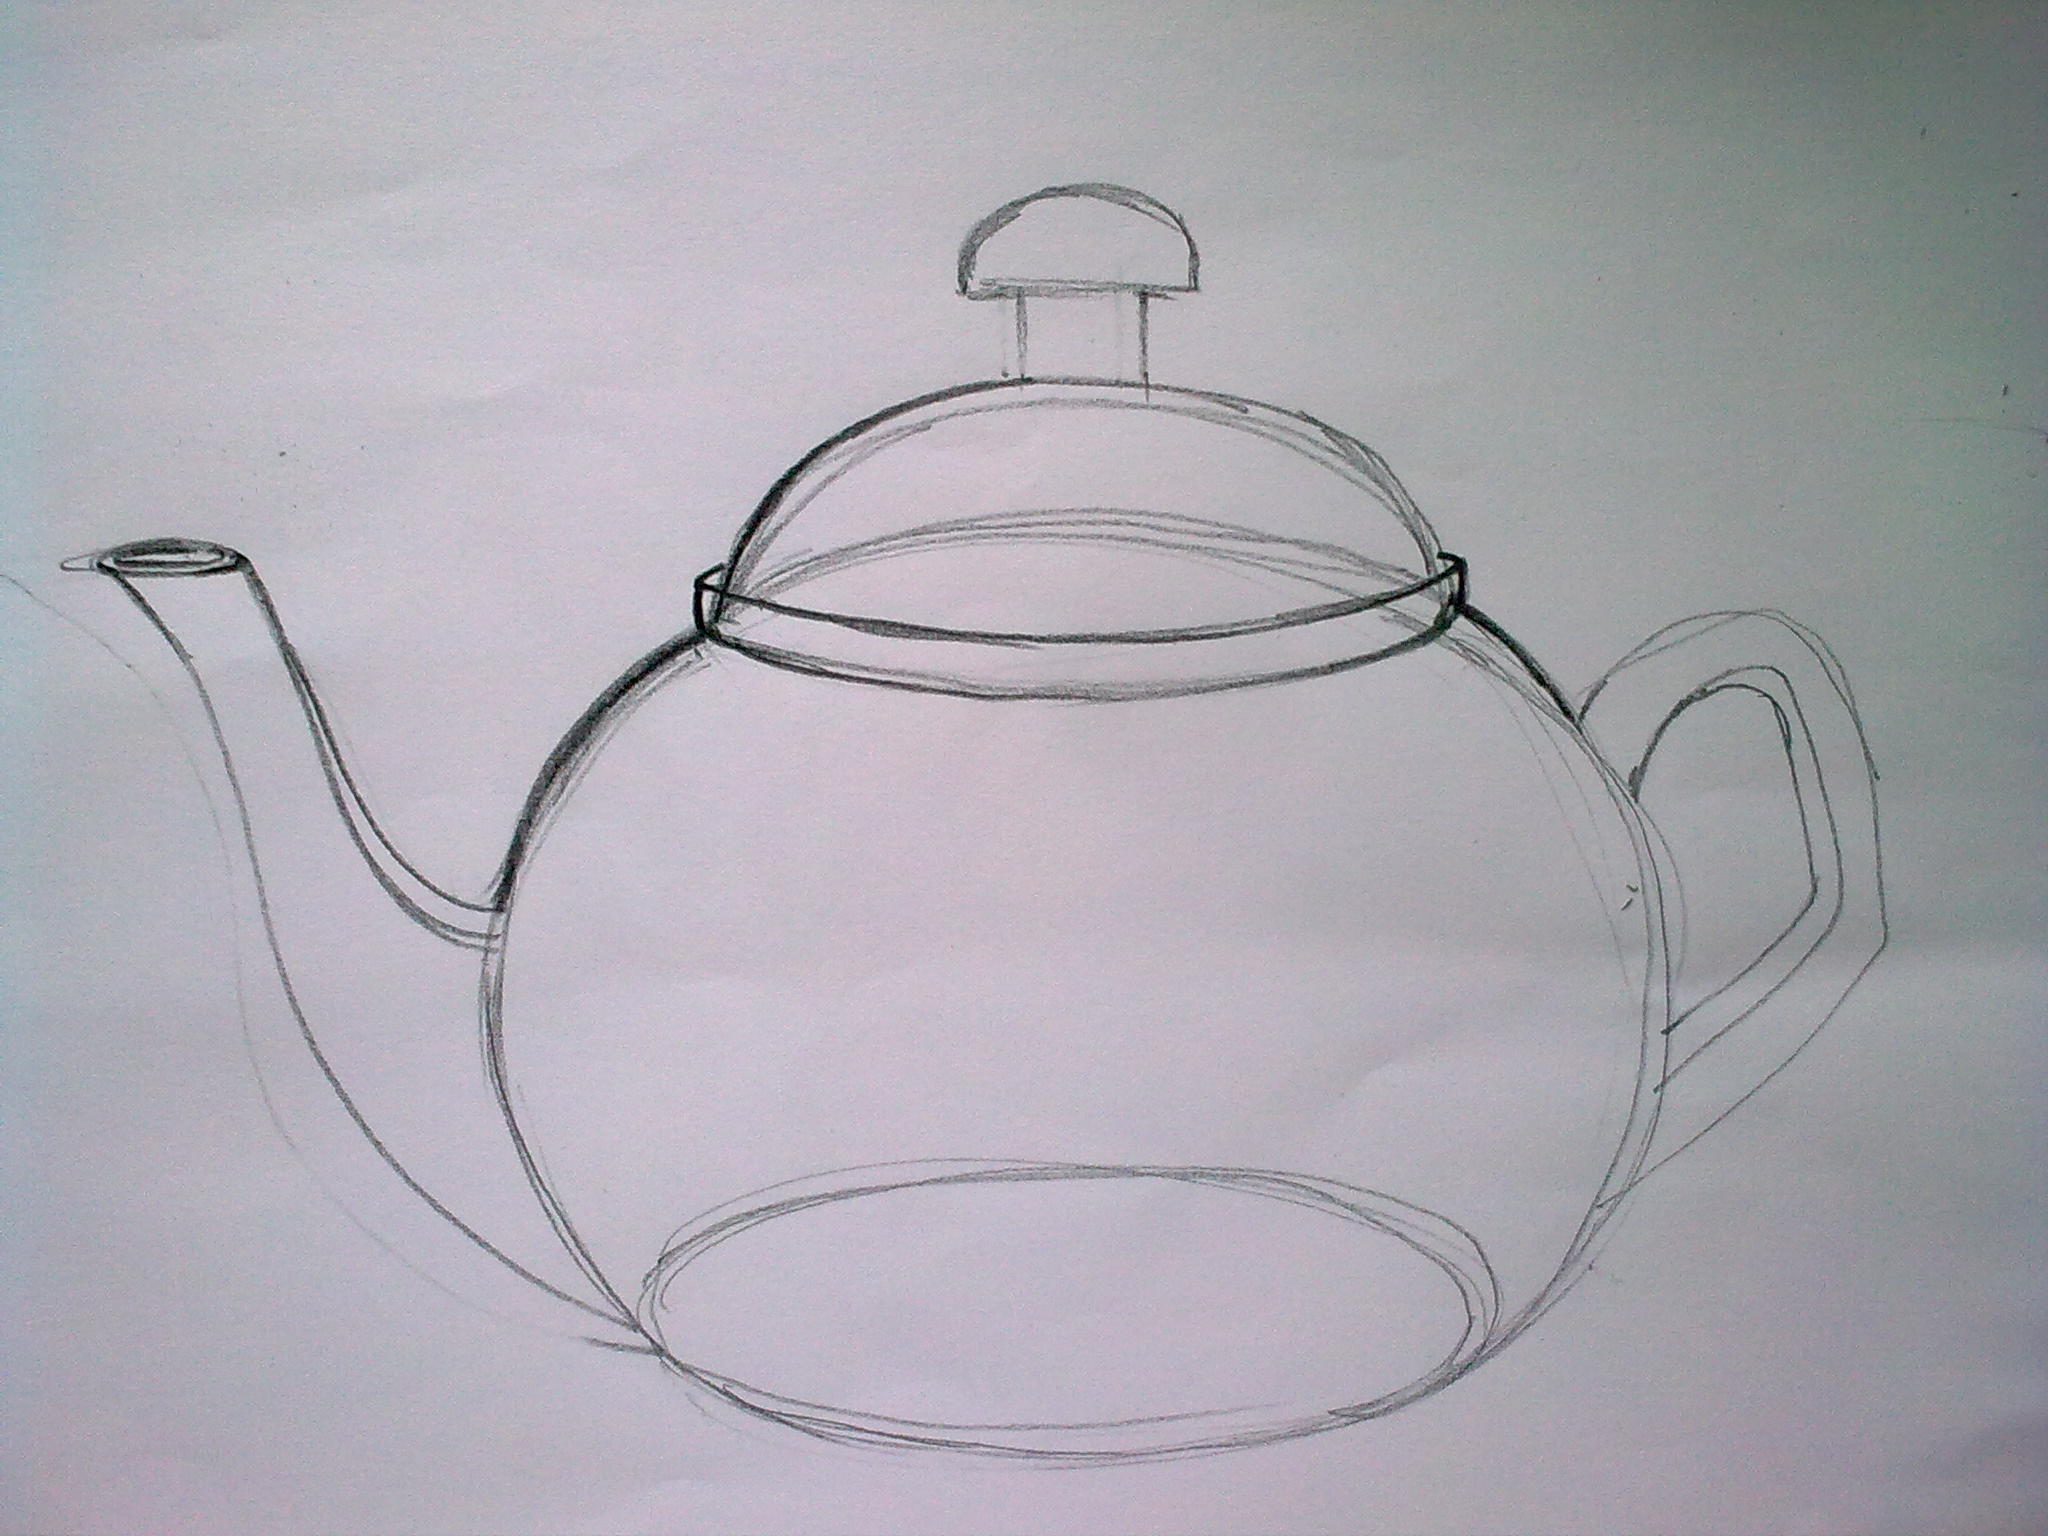 2048x1536 How To Draw A Teapot 1 Sketchlovers